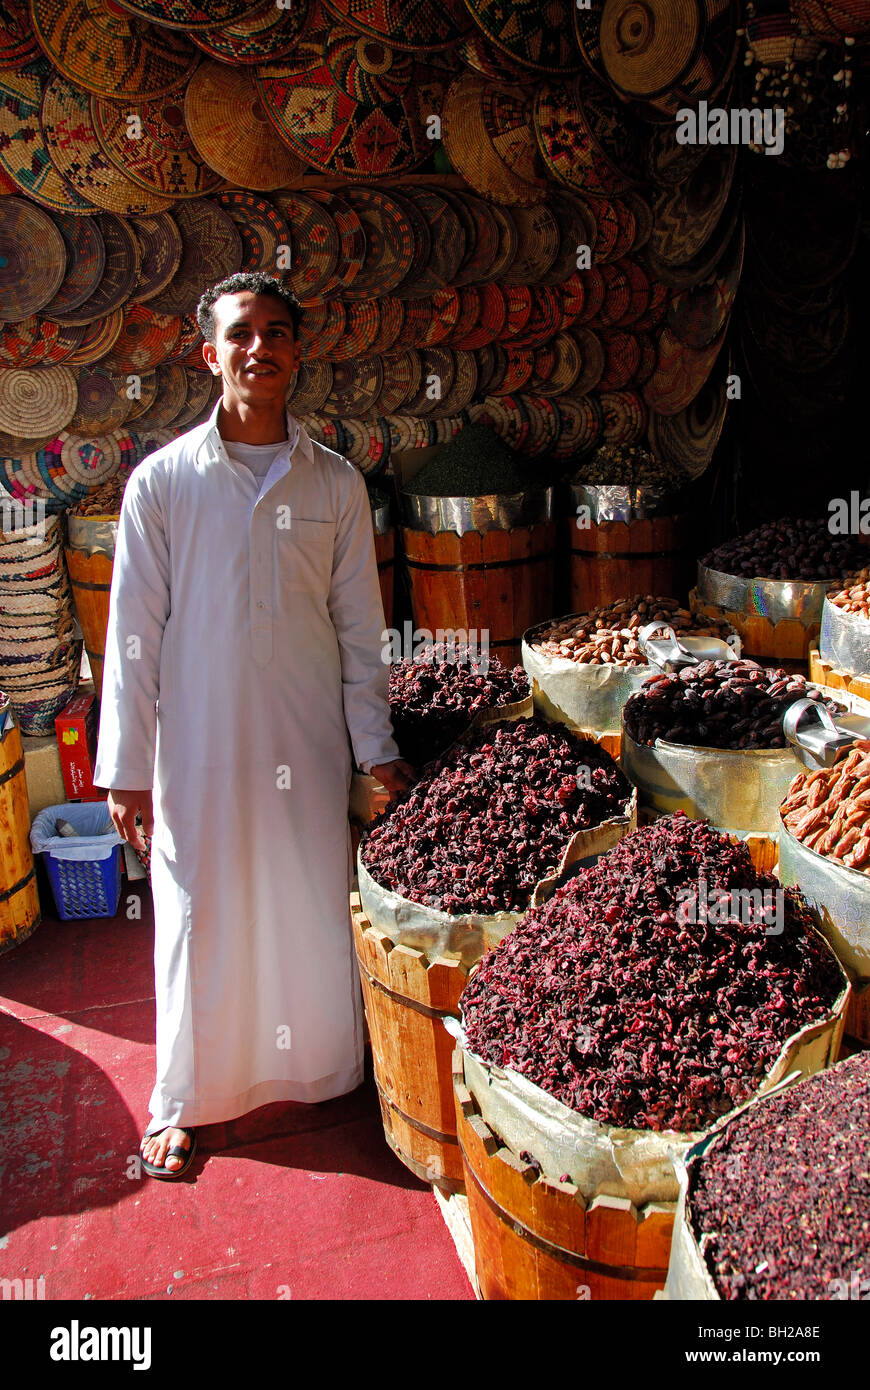 Aswan egypt a shop in aswan market selling dried hibiscus flowers a shop in aswan market selling dried hibiscus flowers used to prepare karkady hibiscus tea izmirmasajfo Images